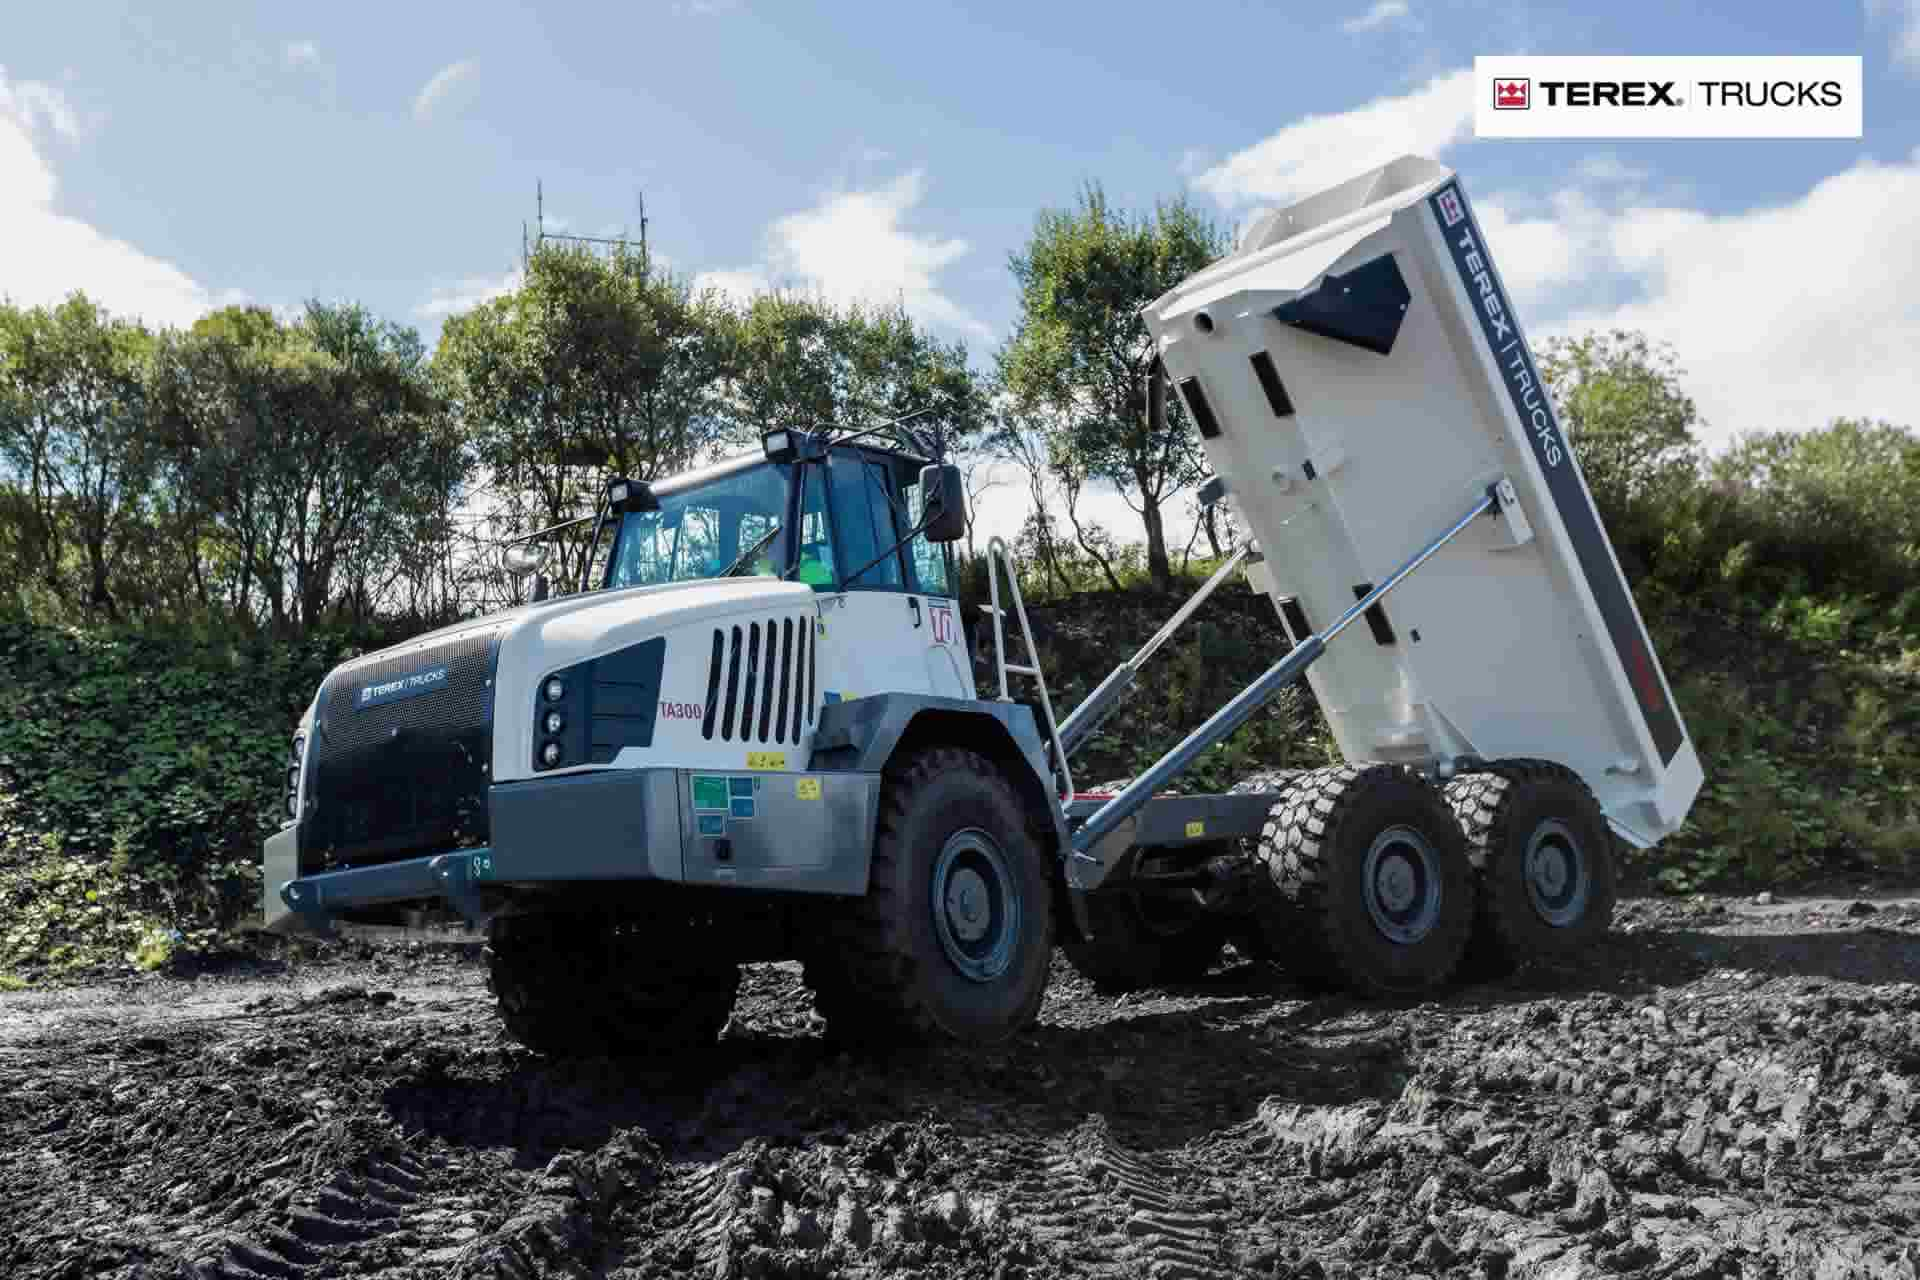 Terex Trucks Virtual Tours